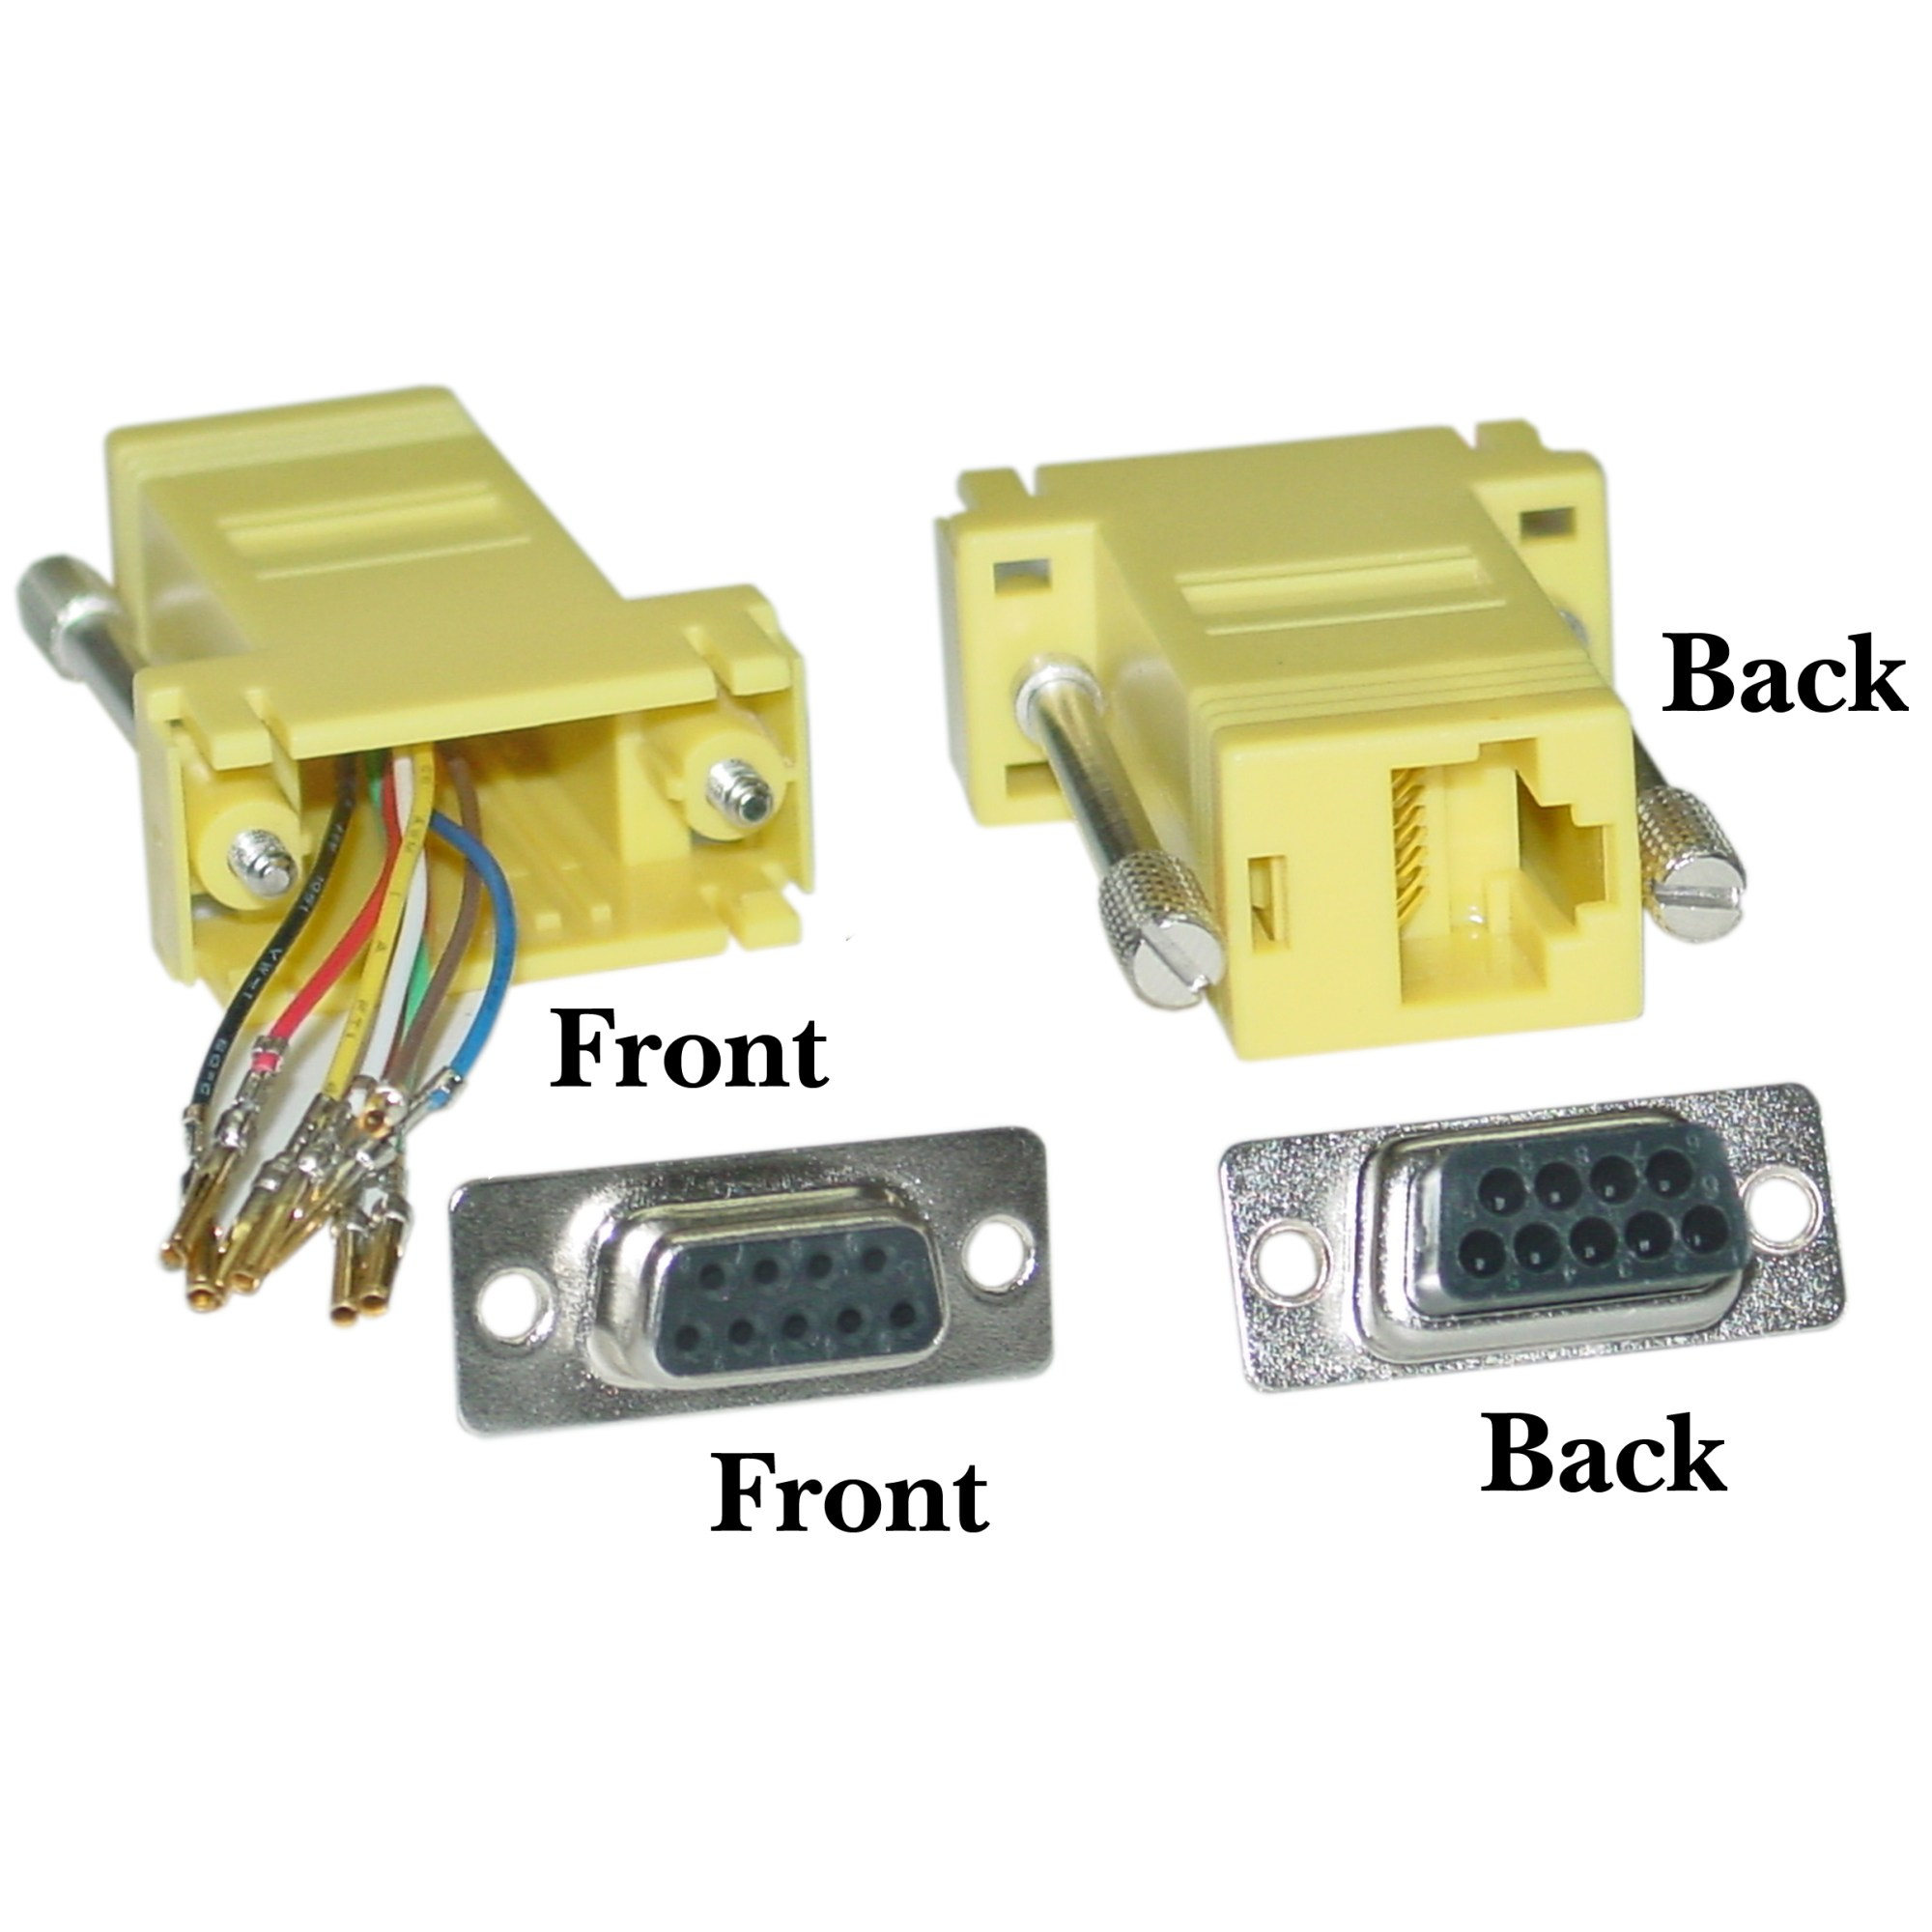 hight resolution of modular adapter yellow db9 female to rj45 jack part number 31d1